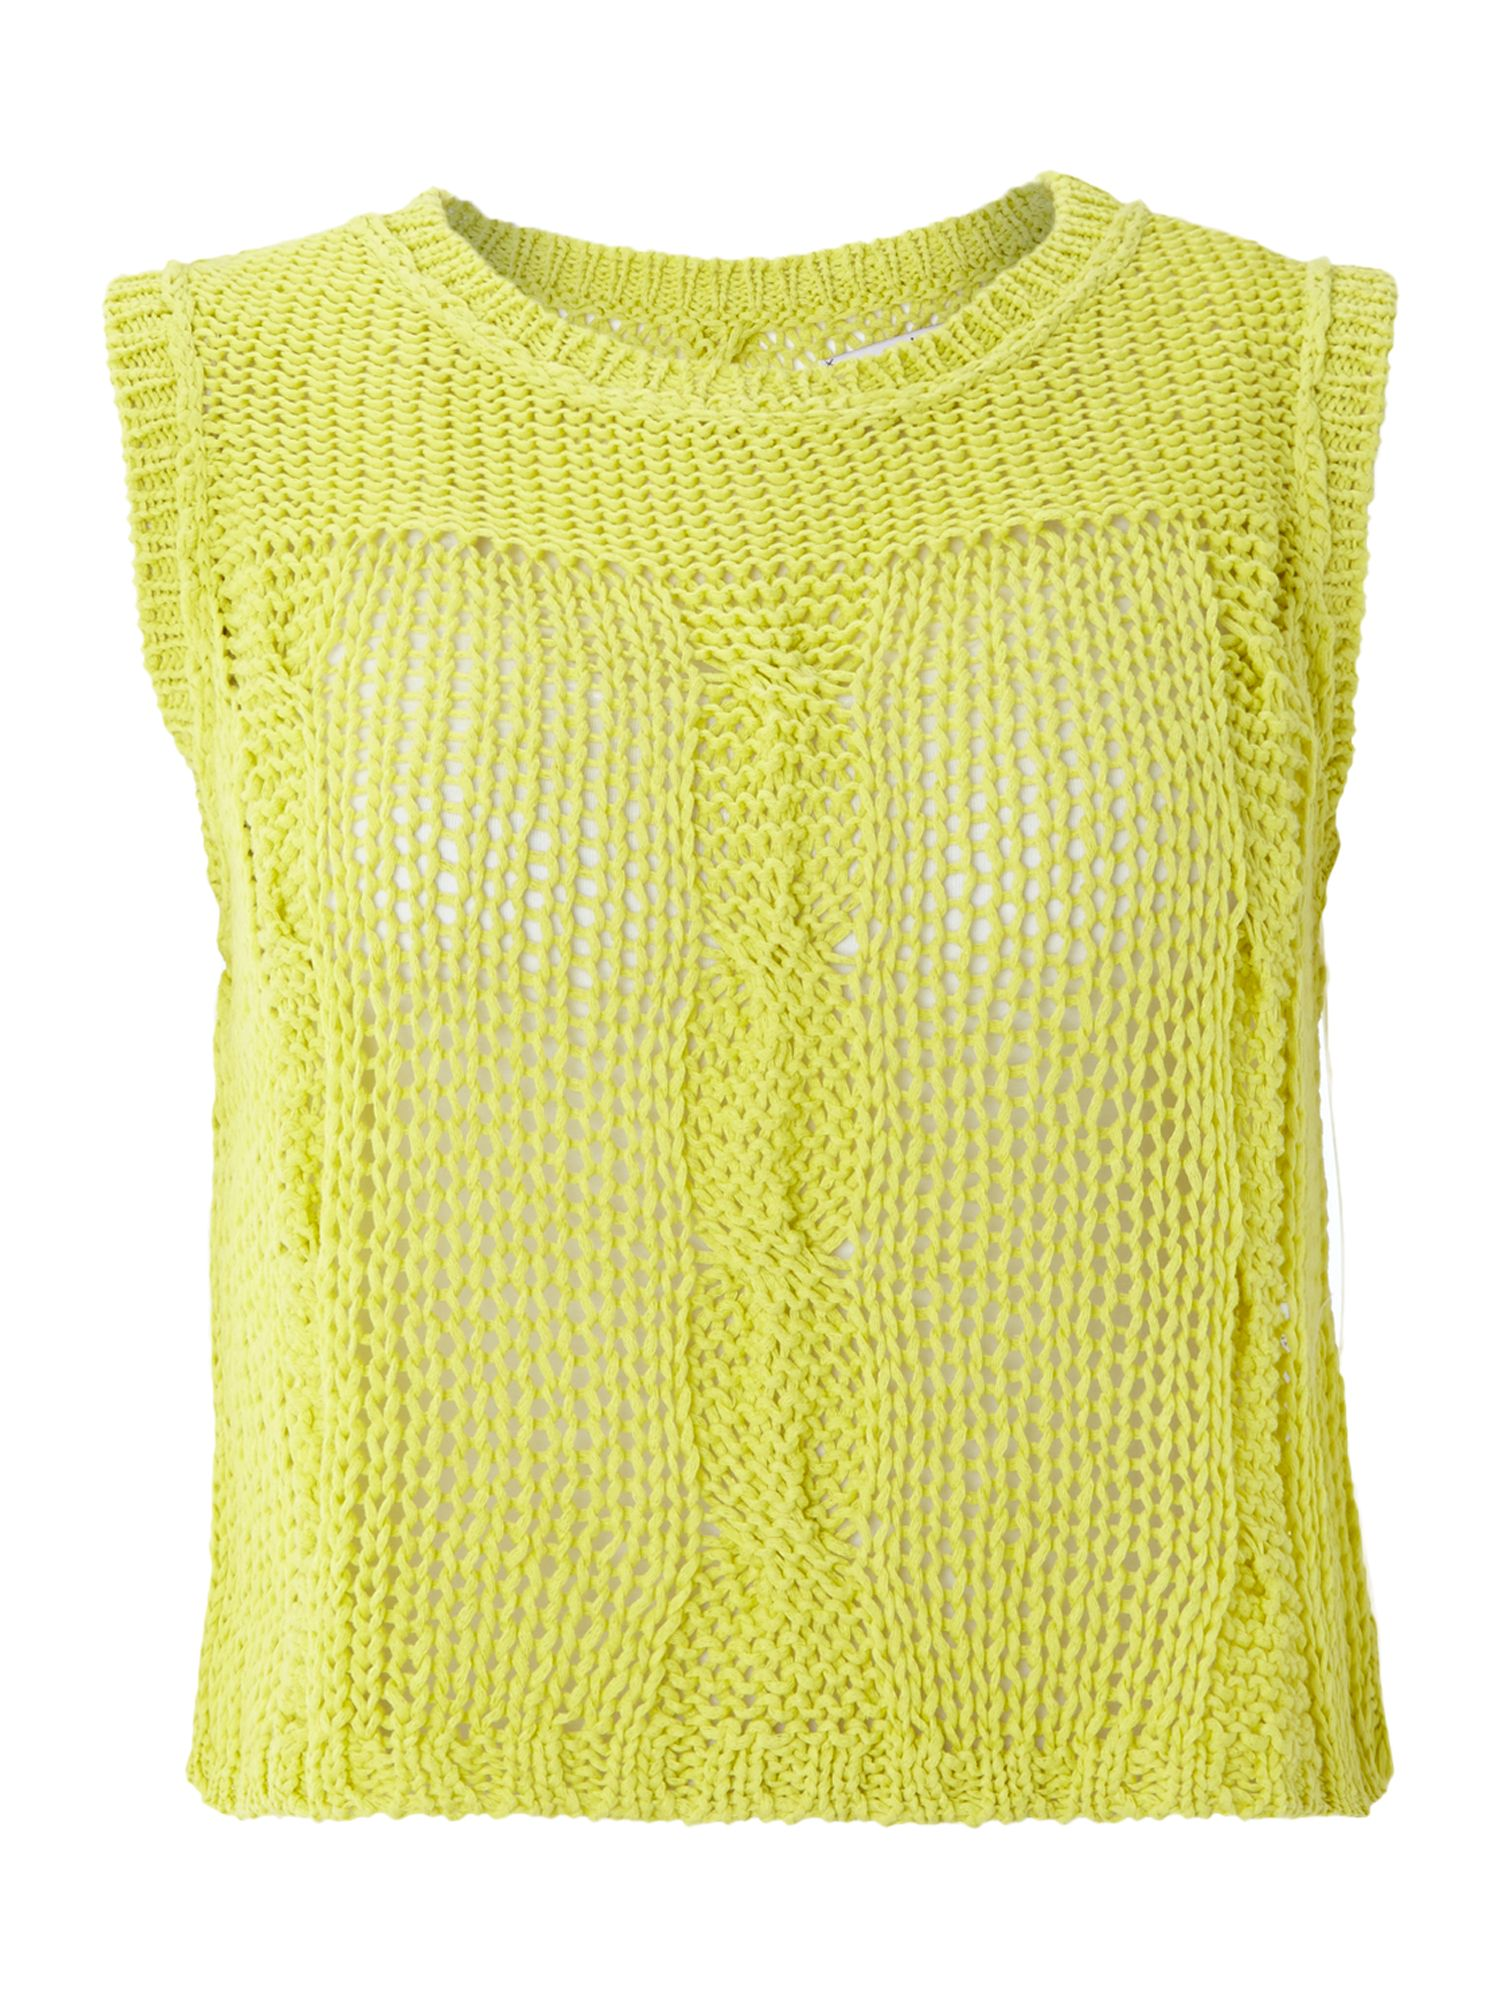 Round neck opened on back mesh